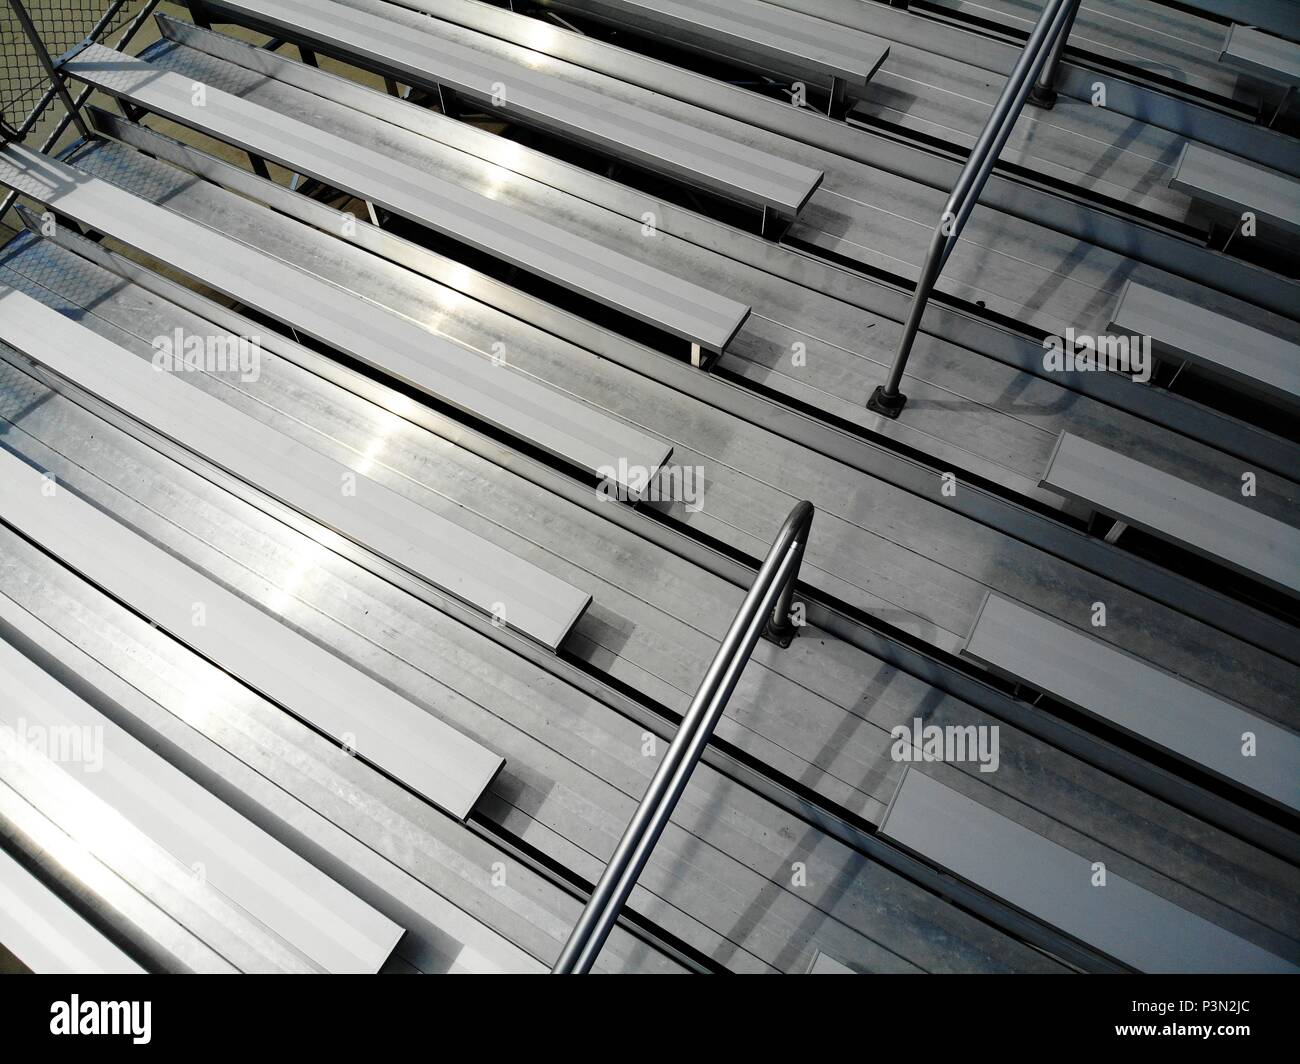 Aerial drone shot of metal bleachers at a sports stadium - Stock Image